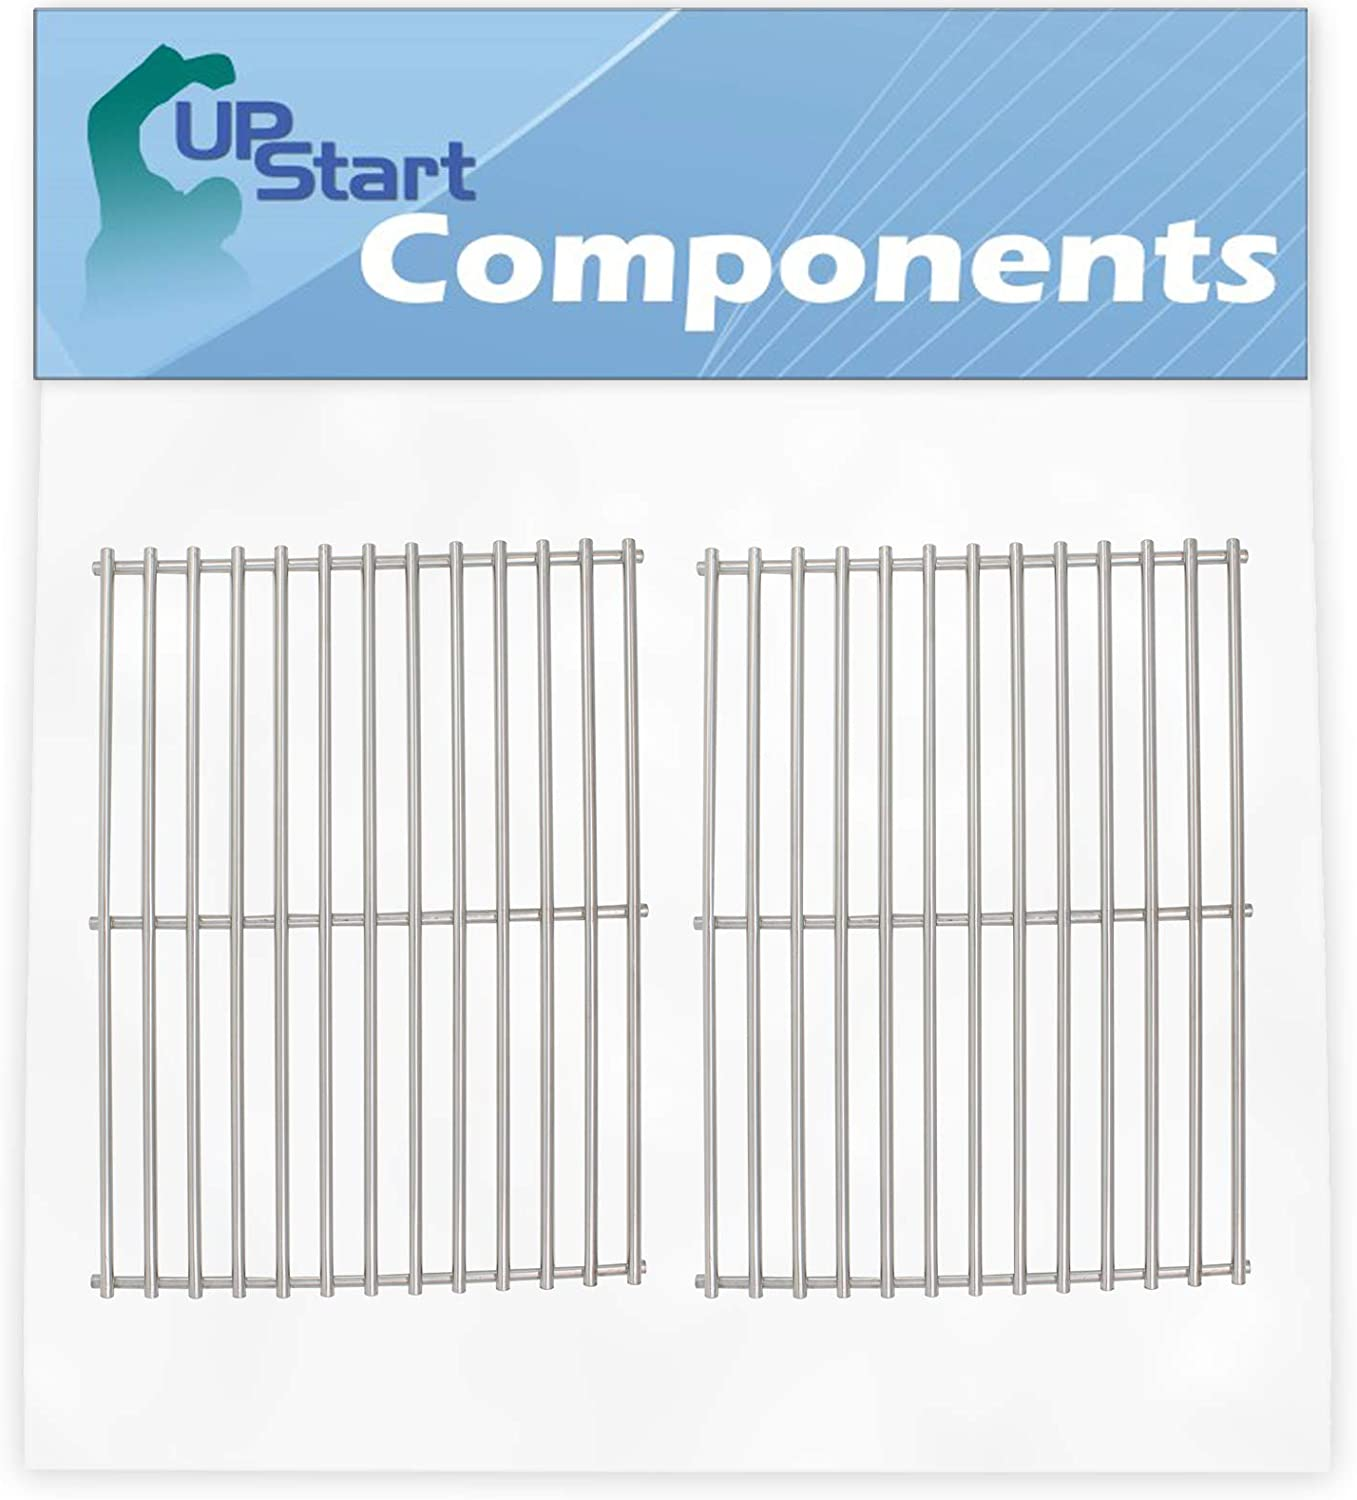 UpStart Components 2-Pack BBQ Grill Replacement Cooking P Max 55% OFF Directly managed store Grates